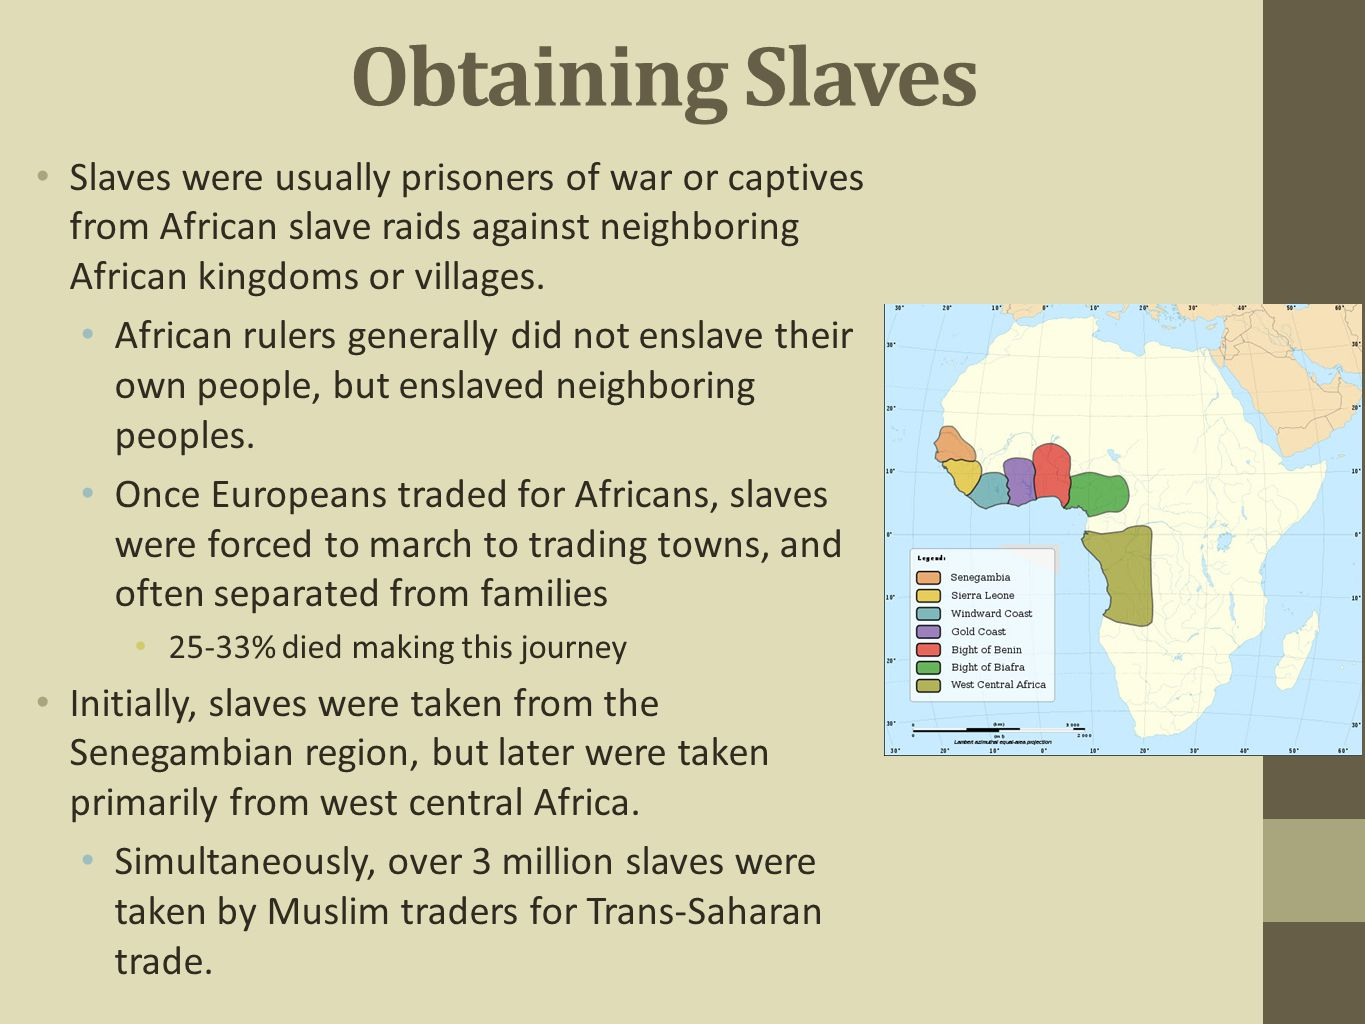 Obtaining Slaves Slaves were usually prisoners of war or captives from African slave raids against neighboring African kingdoms or villages.